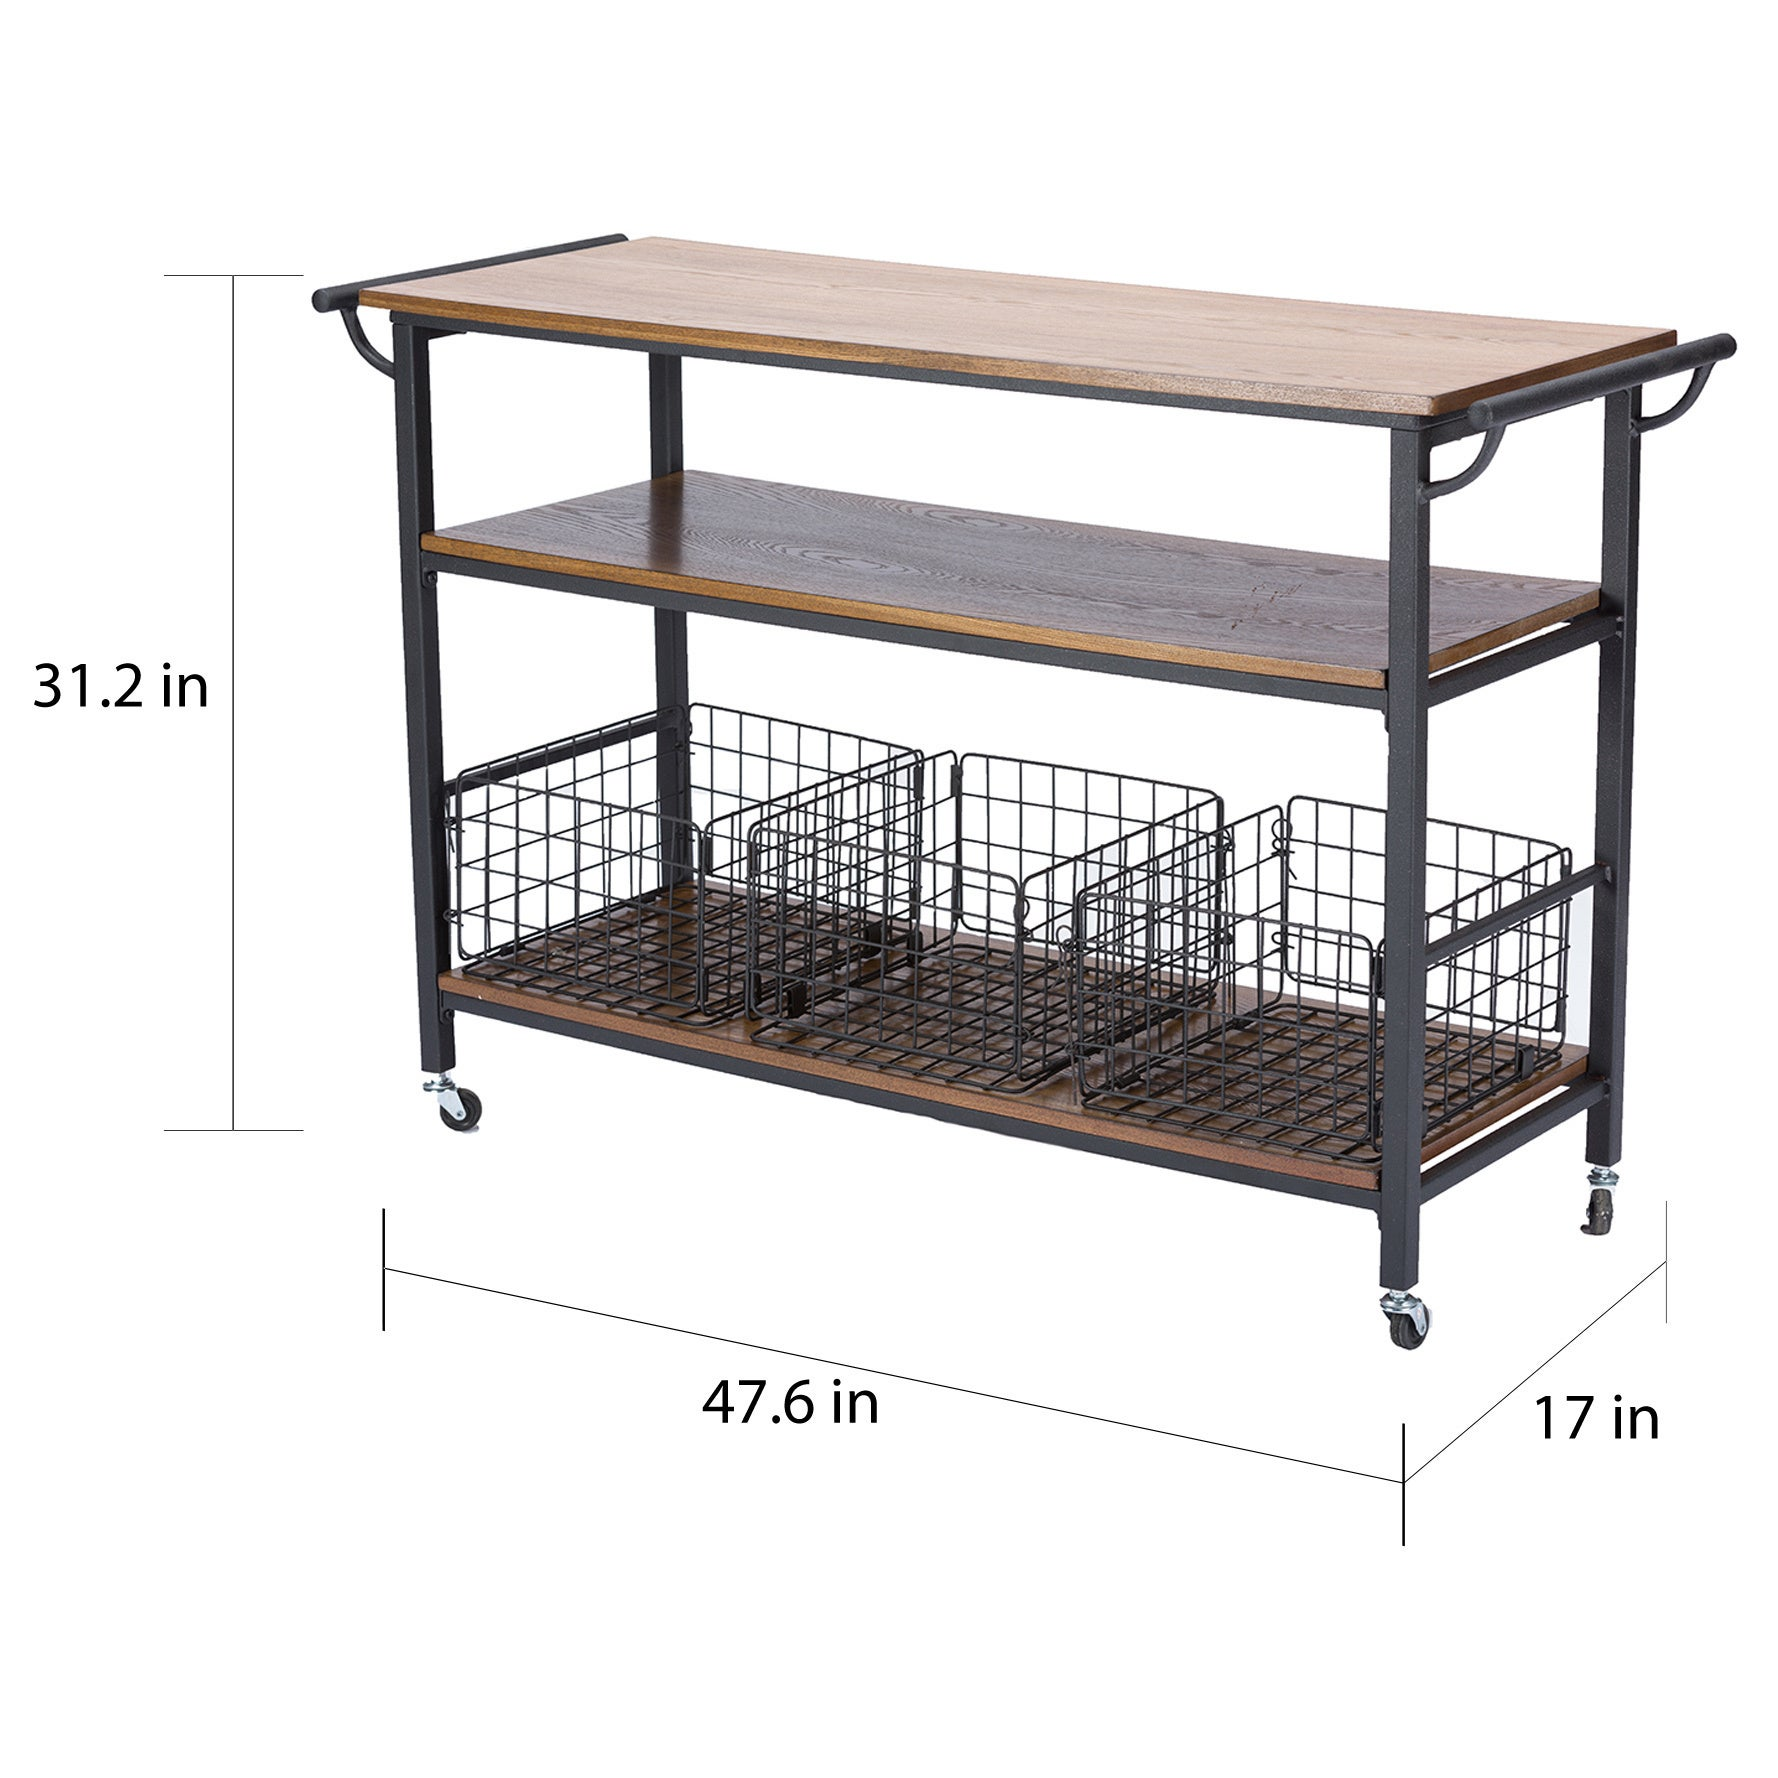 Shop Maison Rouge Mayer Metal Frame Rustic Kitchen Cart with Wood ...